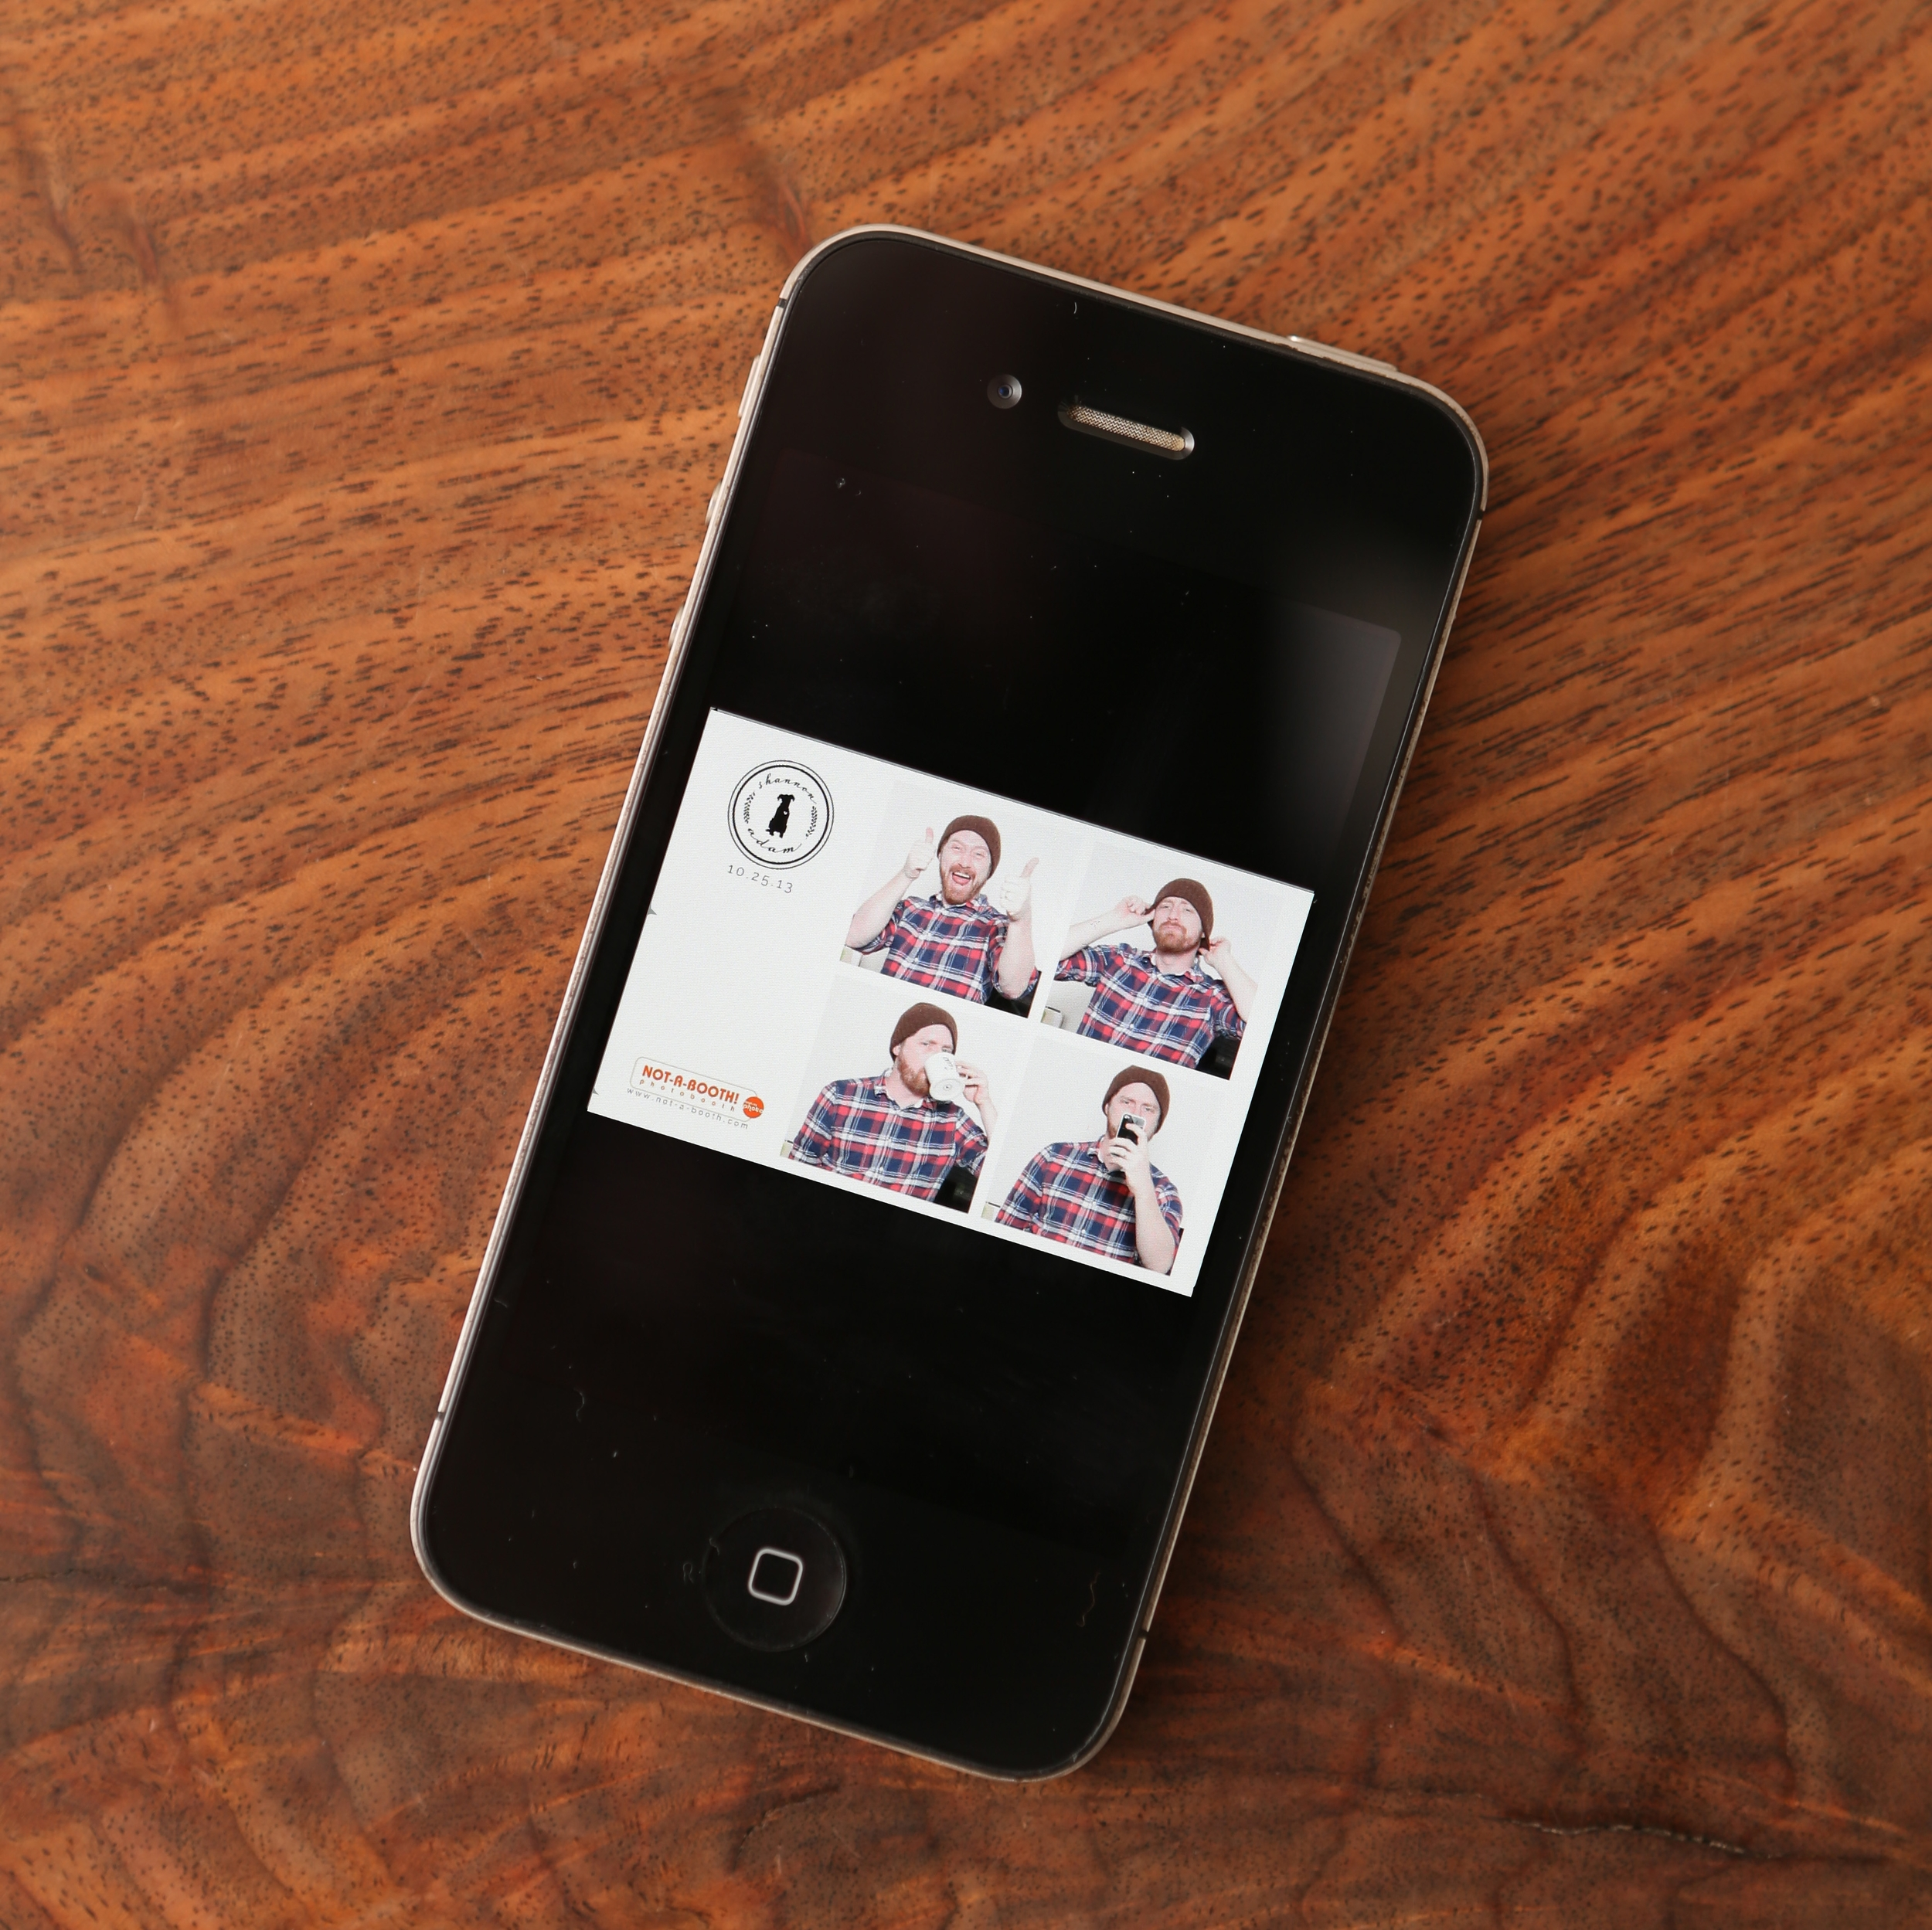 Instantly delivers images straight from the booth to your phone via MMS!